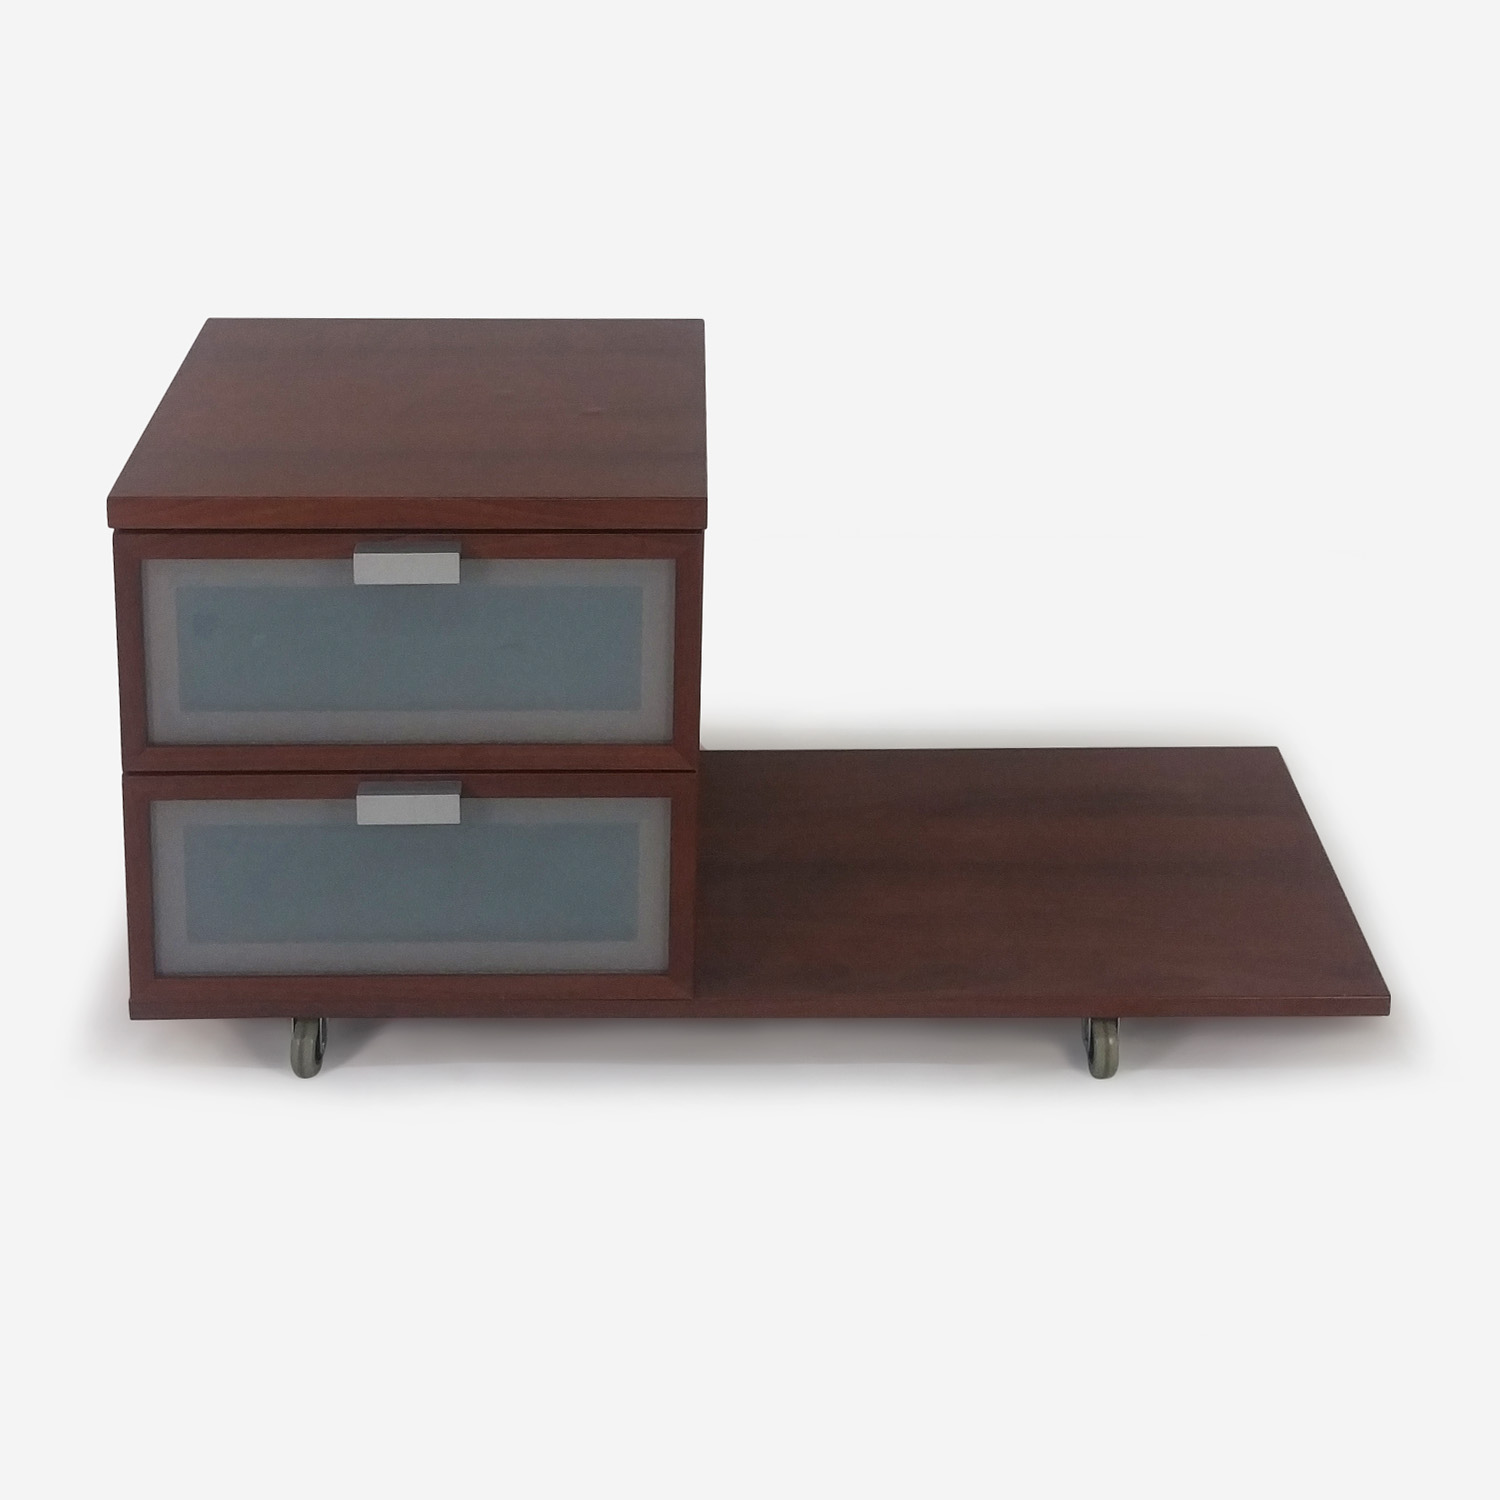 IKEA Medium Brown Nightstand